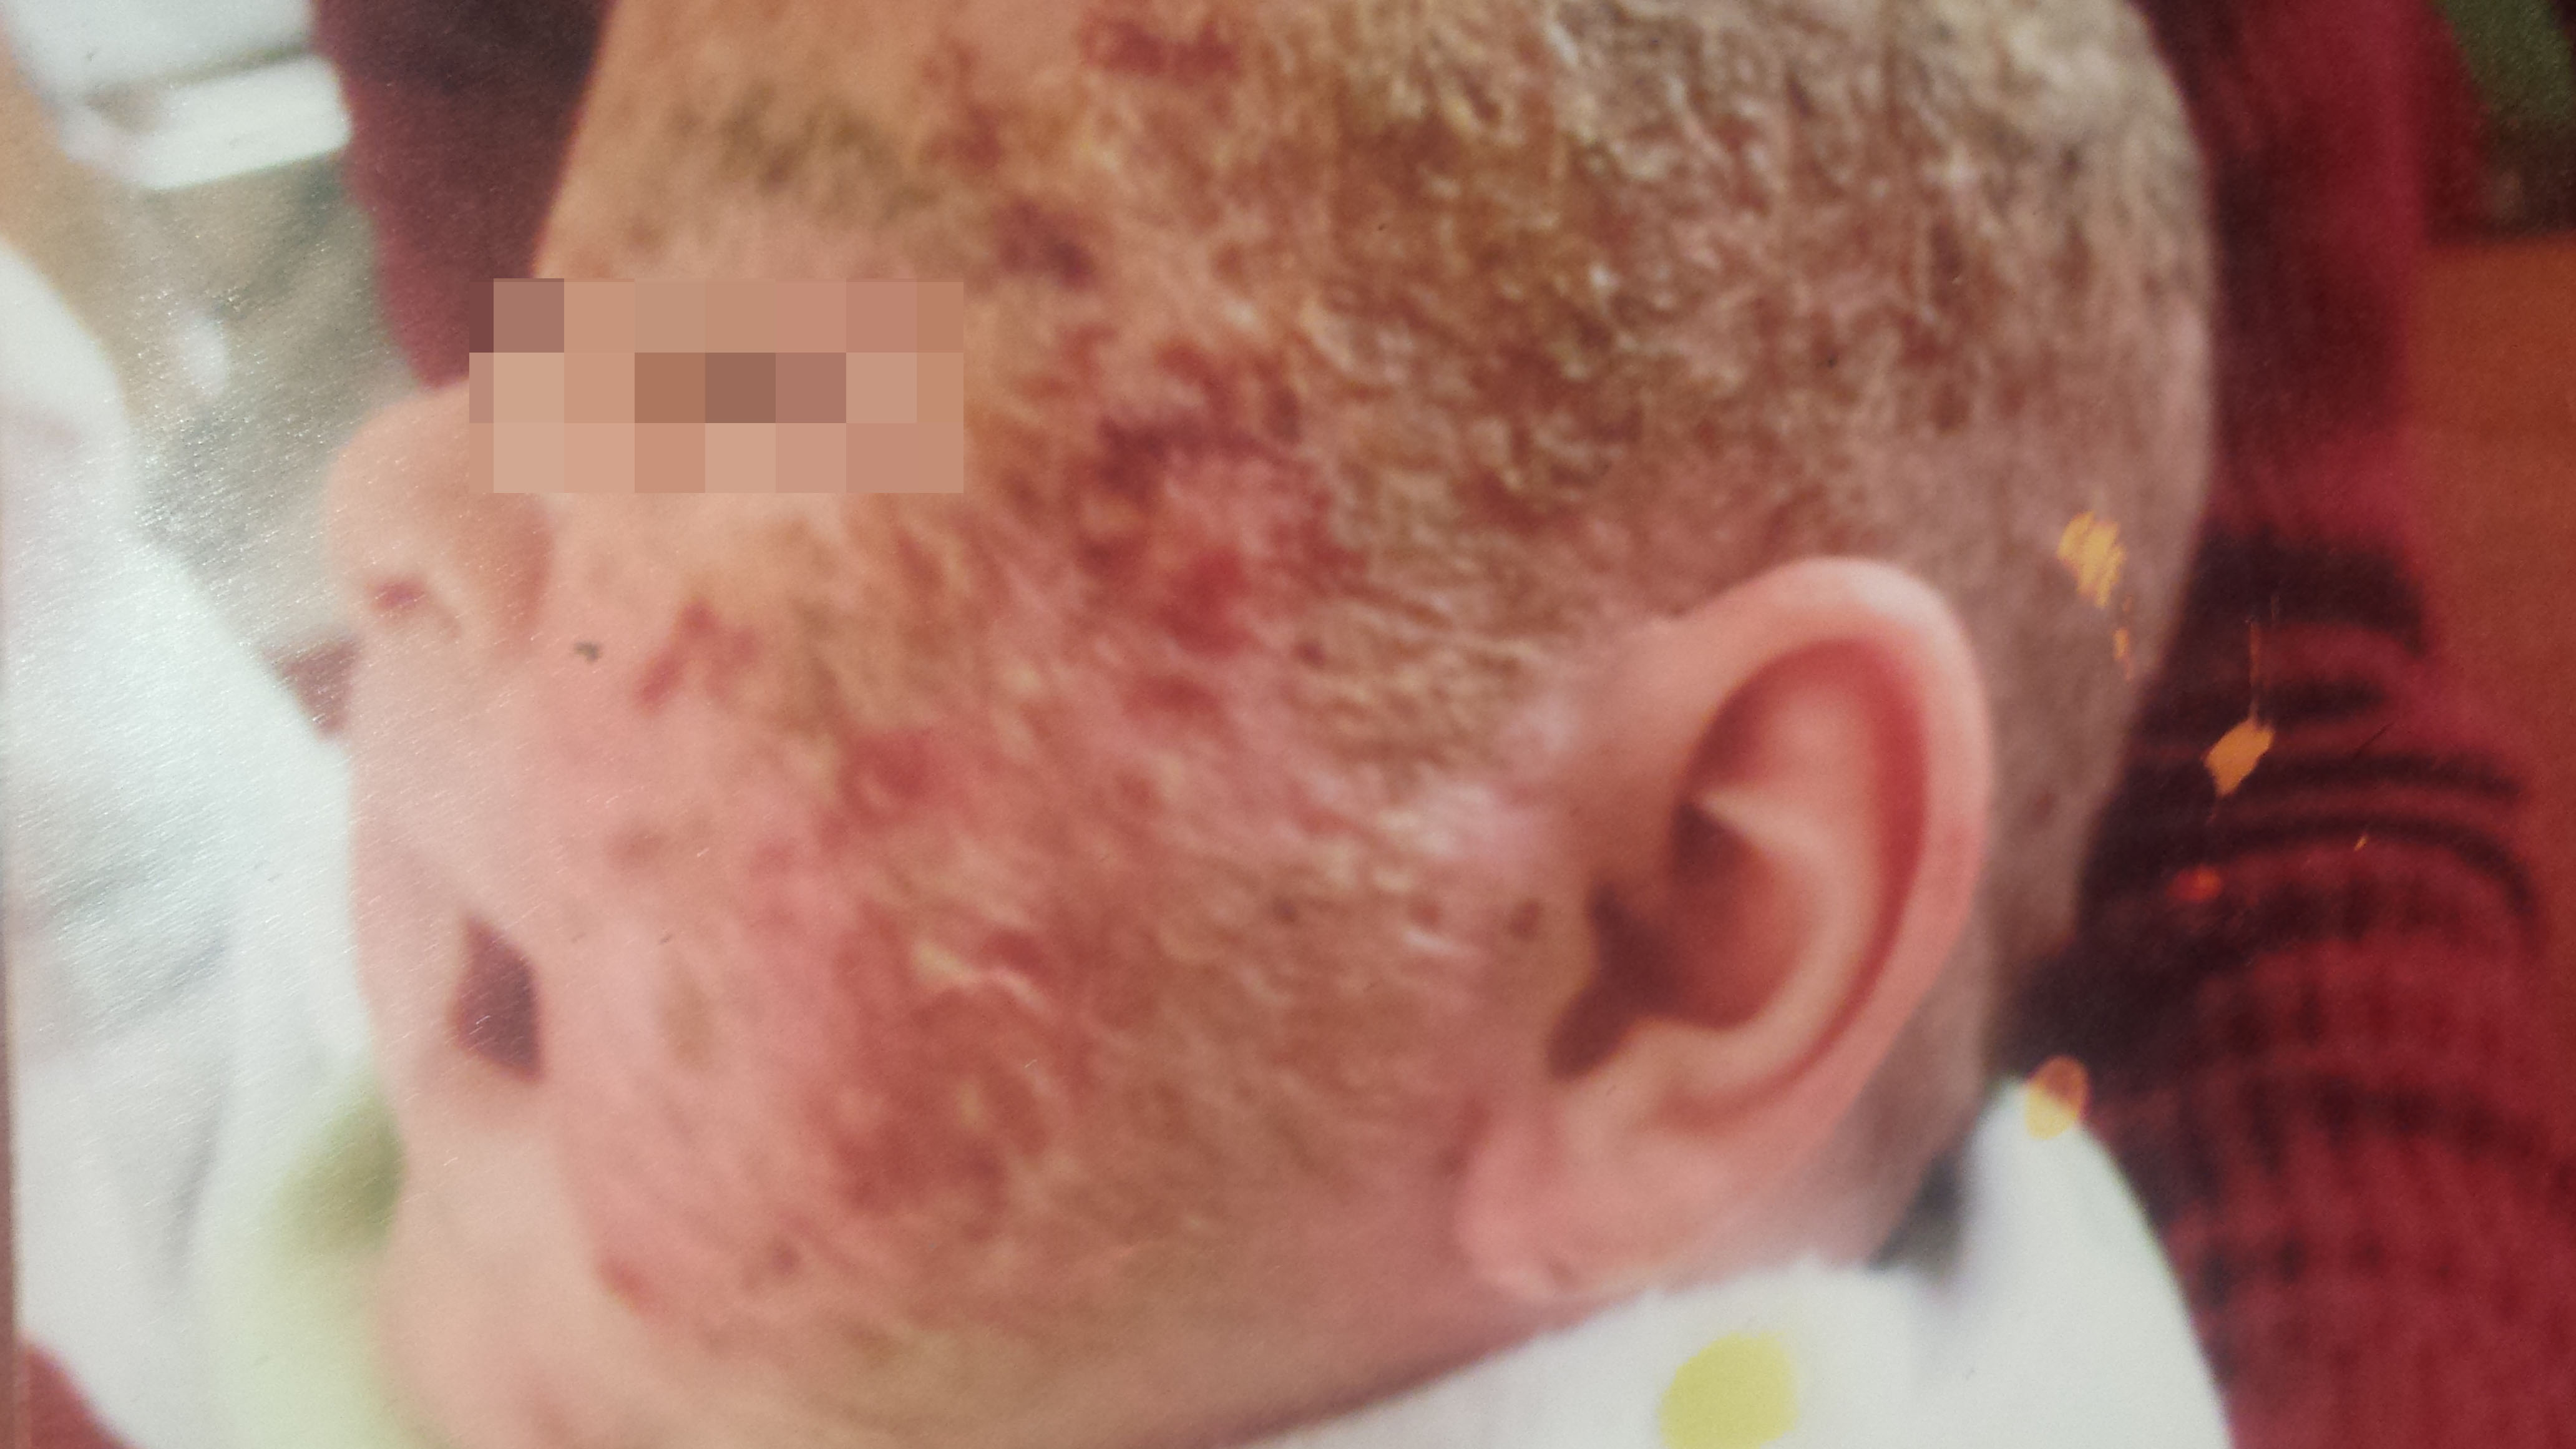 contact dermatitis due to topical steroids